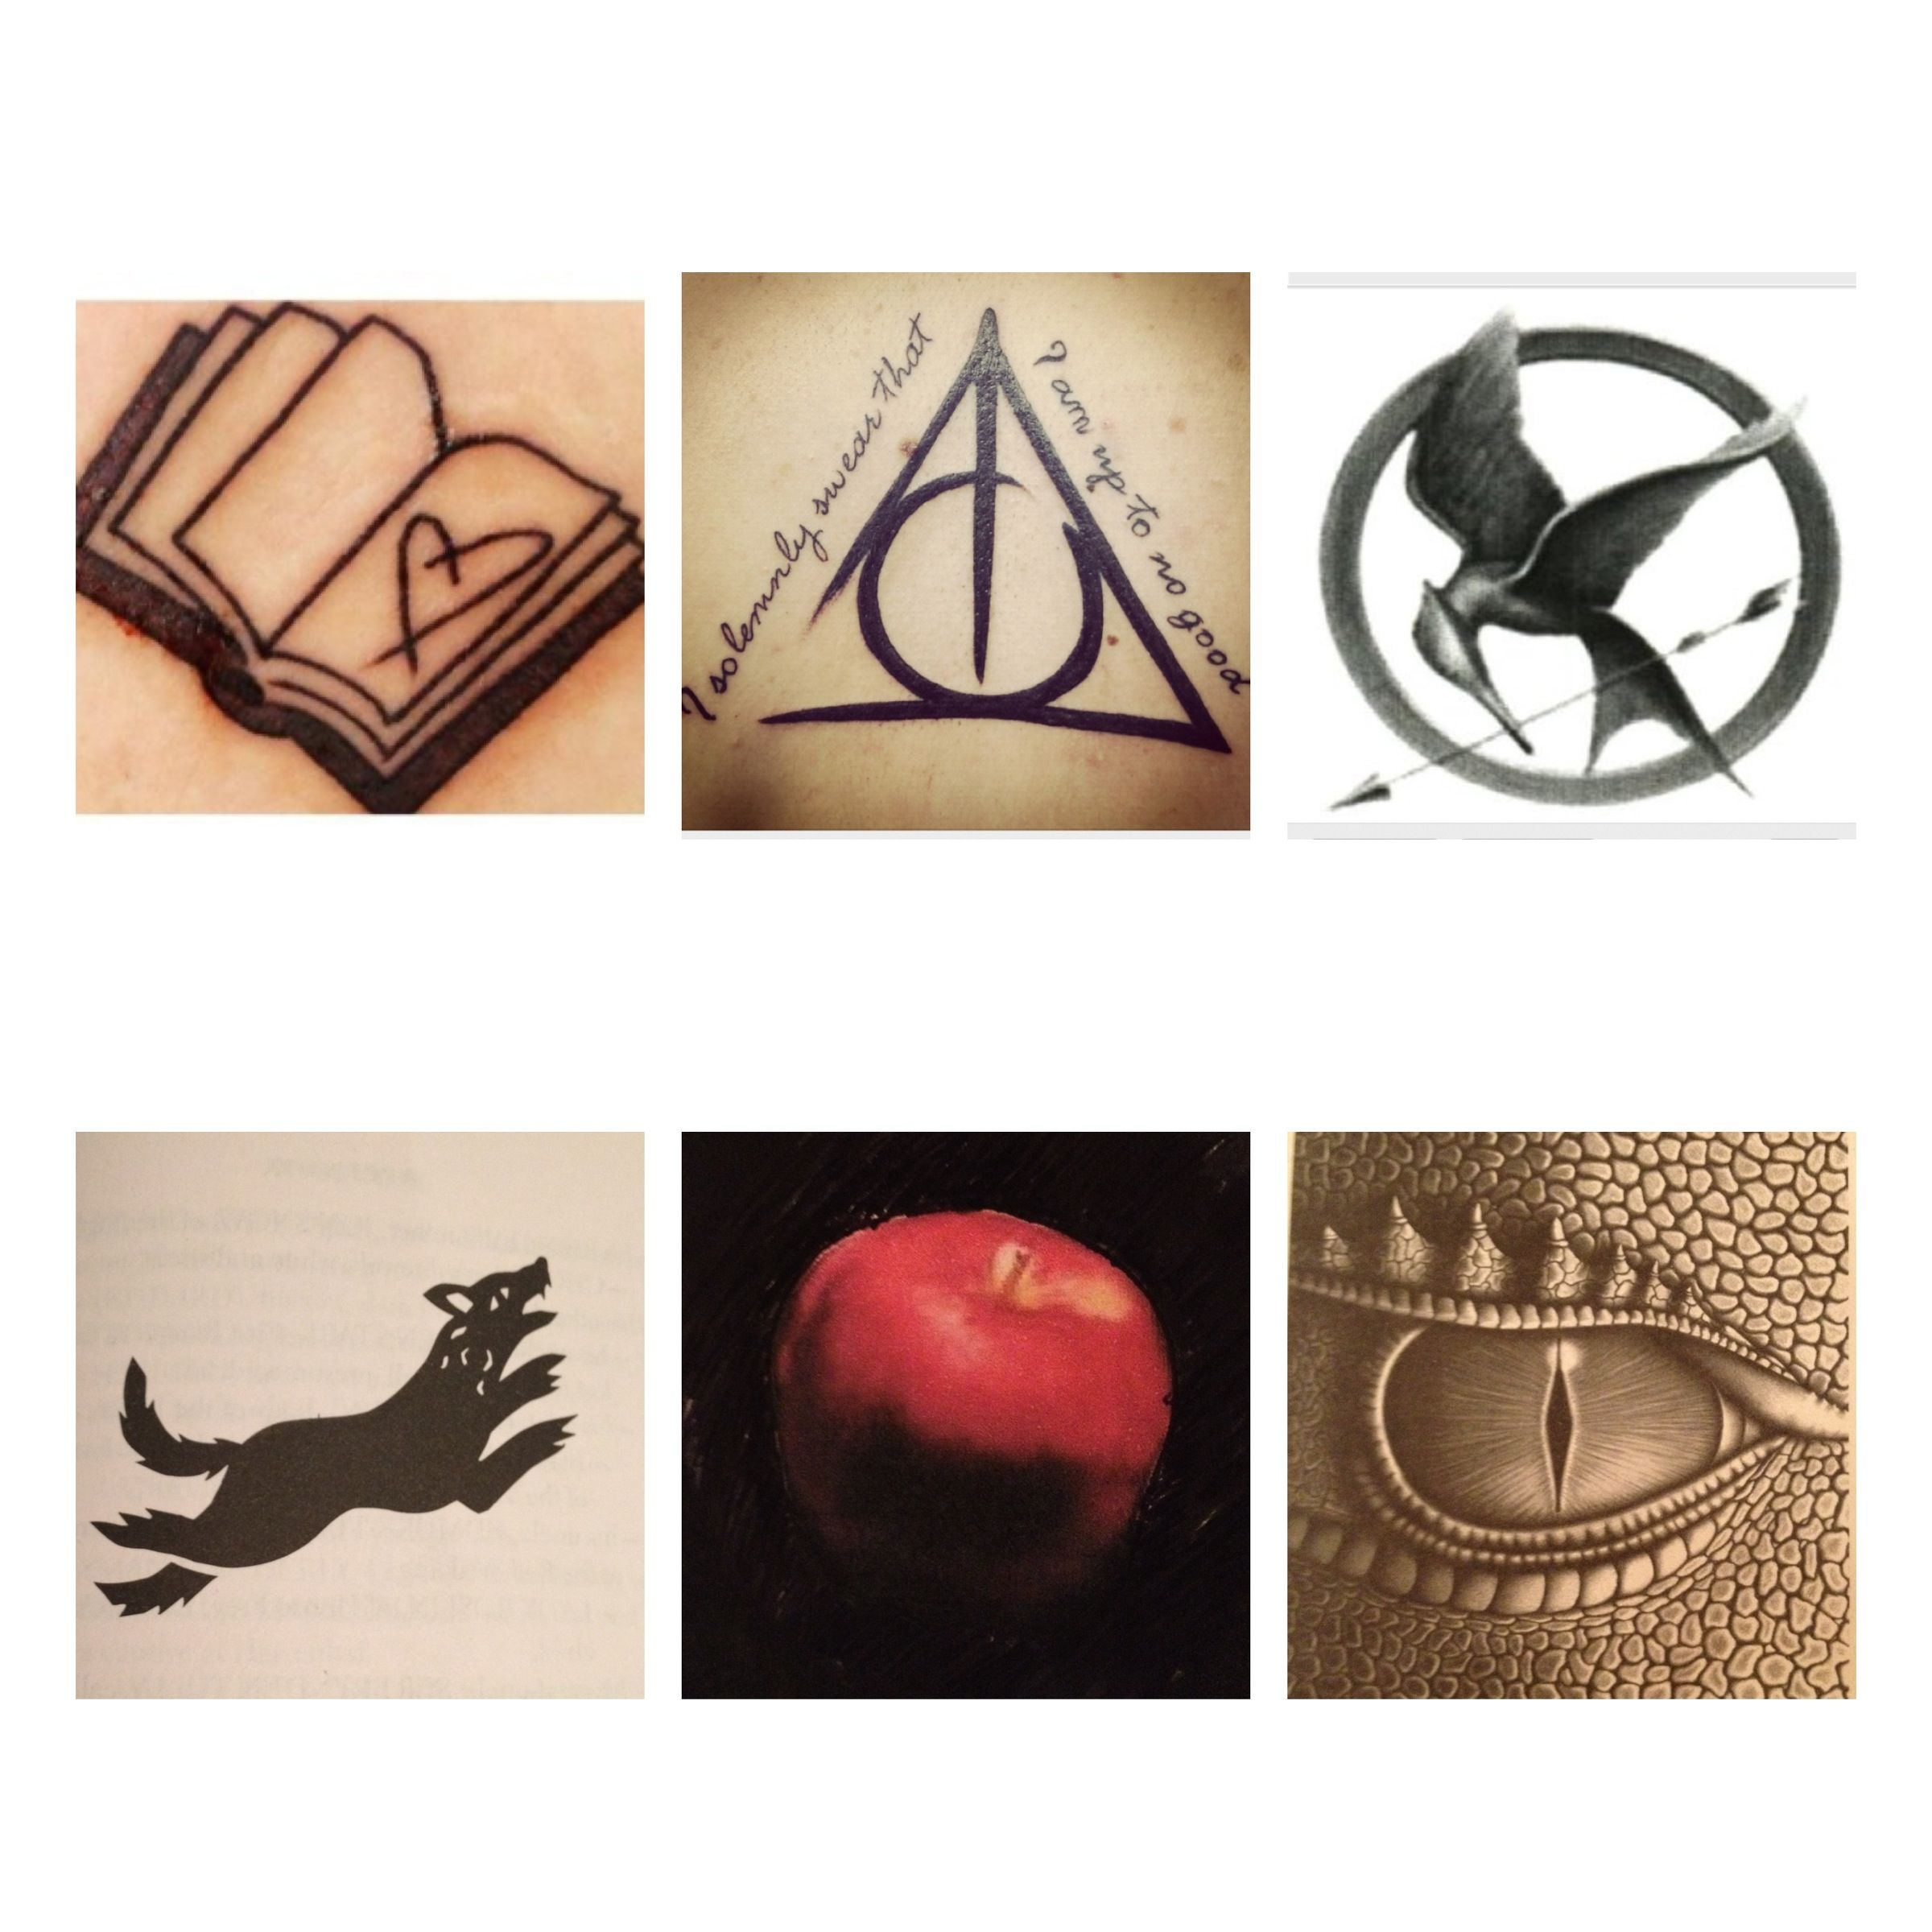 Some more ideas for a tattoo I want to get. This represents my love of books and some of my favourites